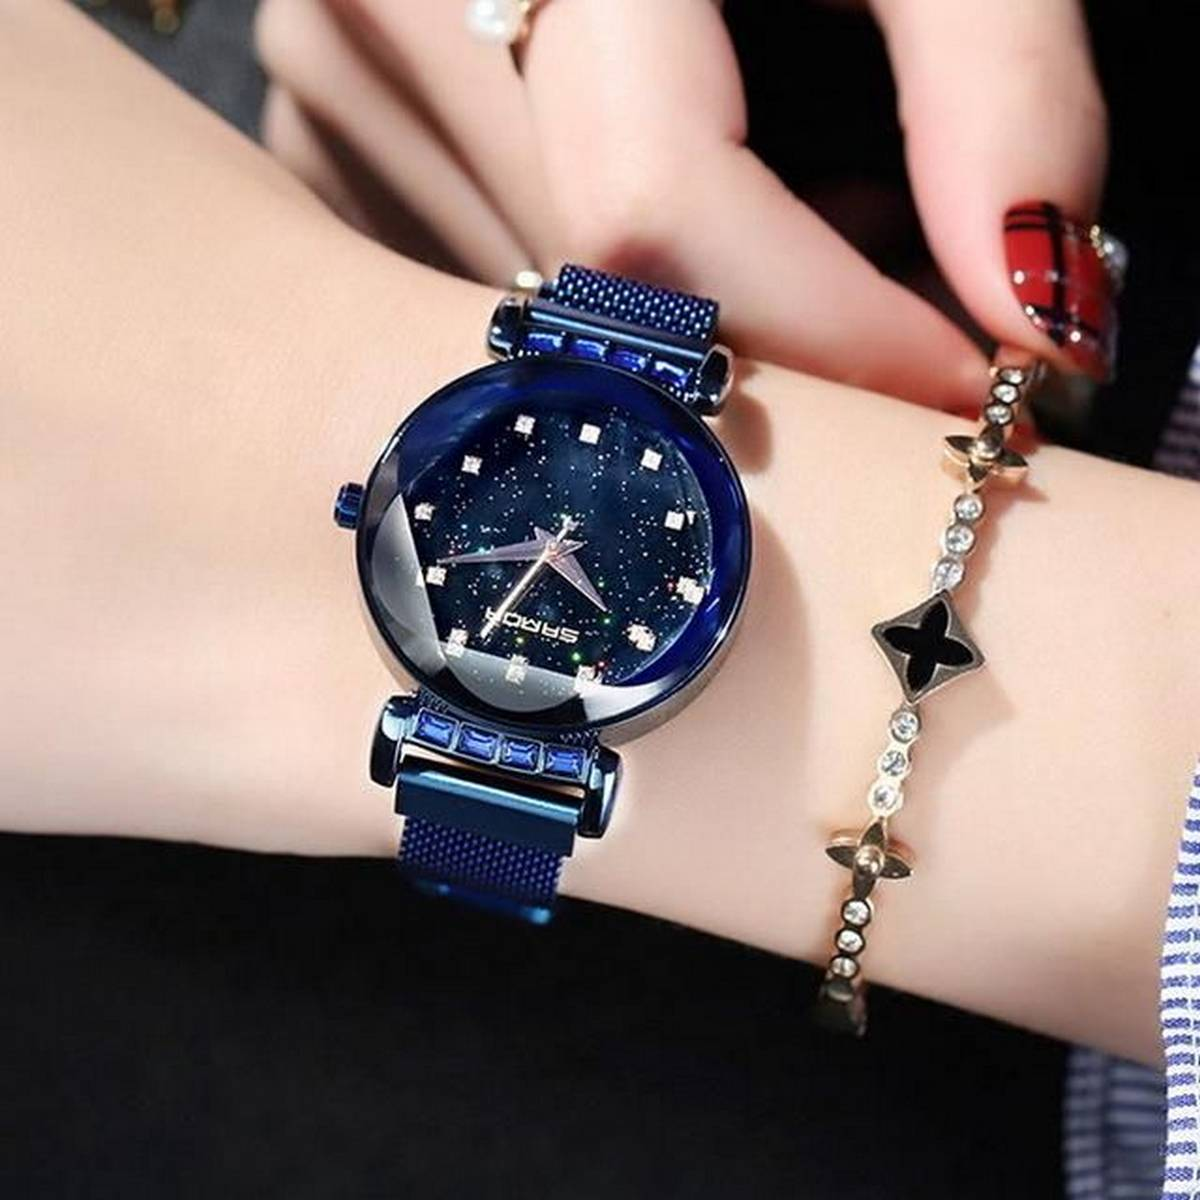 New Laxurius Looking 2020 Magnet Buckle Starry sky Quartz Watches For Girls & Women - Magnetic Chain Belt Analog Watch-TW786